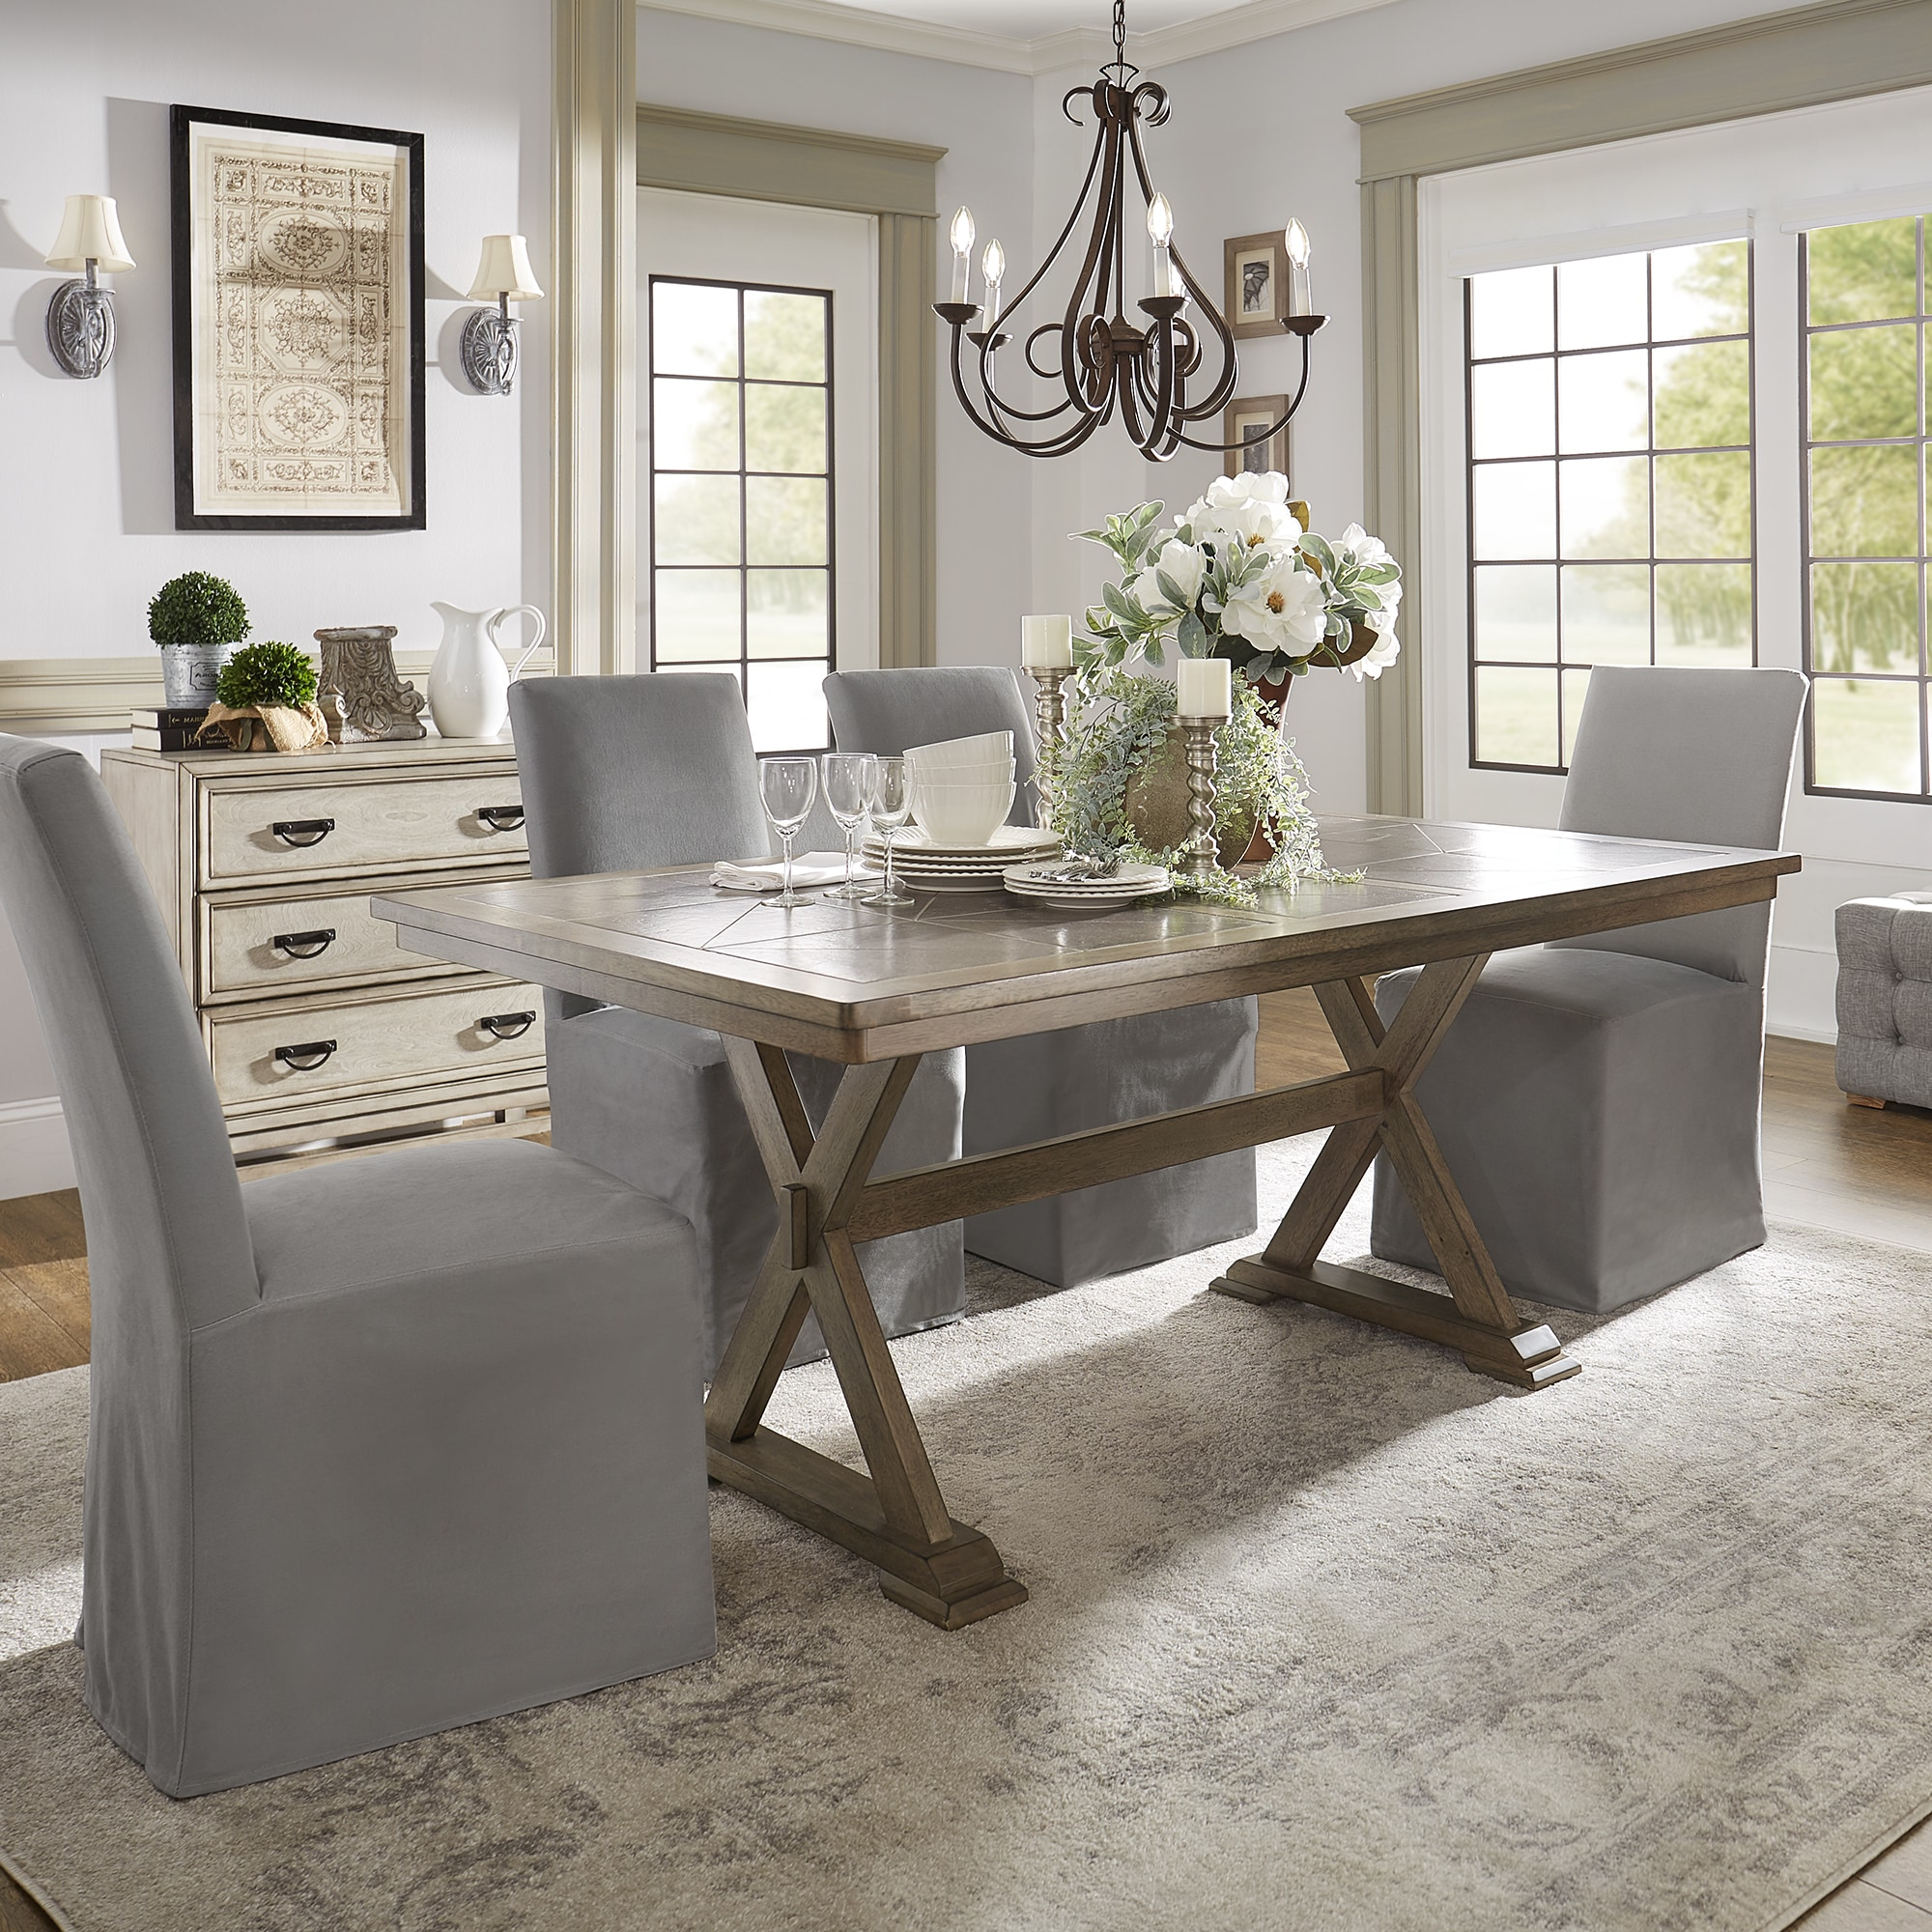 Pennington Grey Wood Rectangular Tile Top Trestle Dining Table By INSPIRE Q  Artisan   Free Shipping Today   Overstock.com   25288618